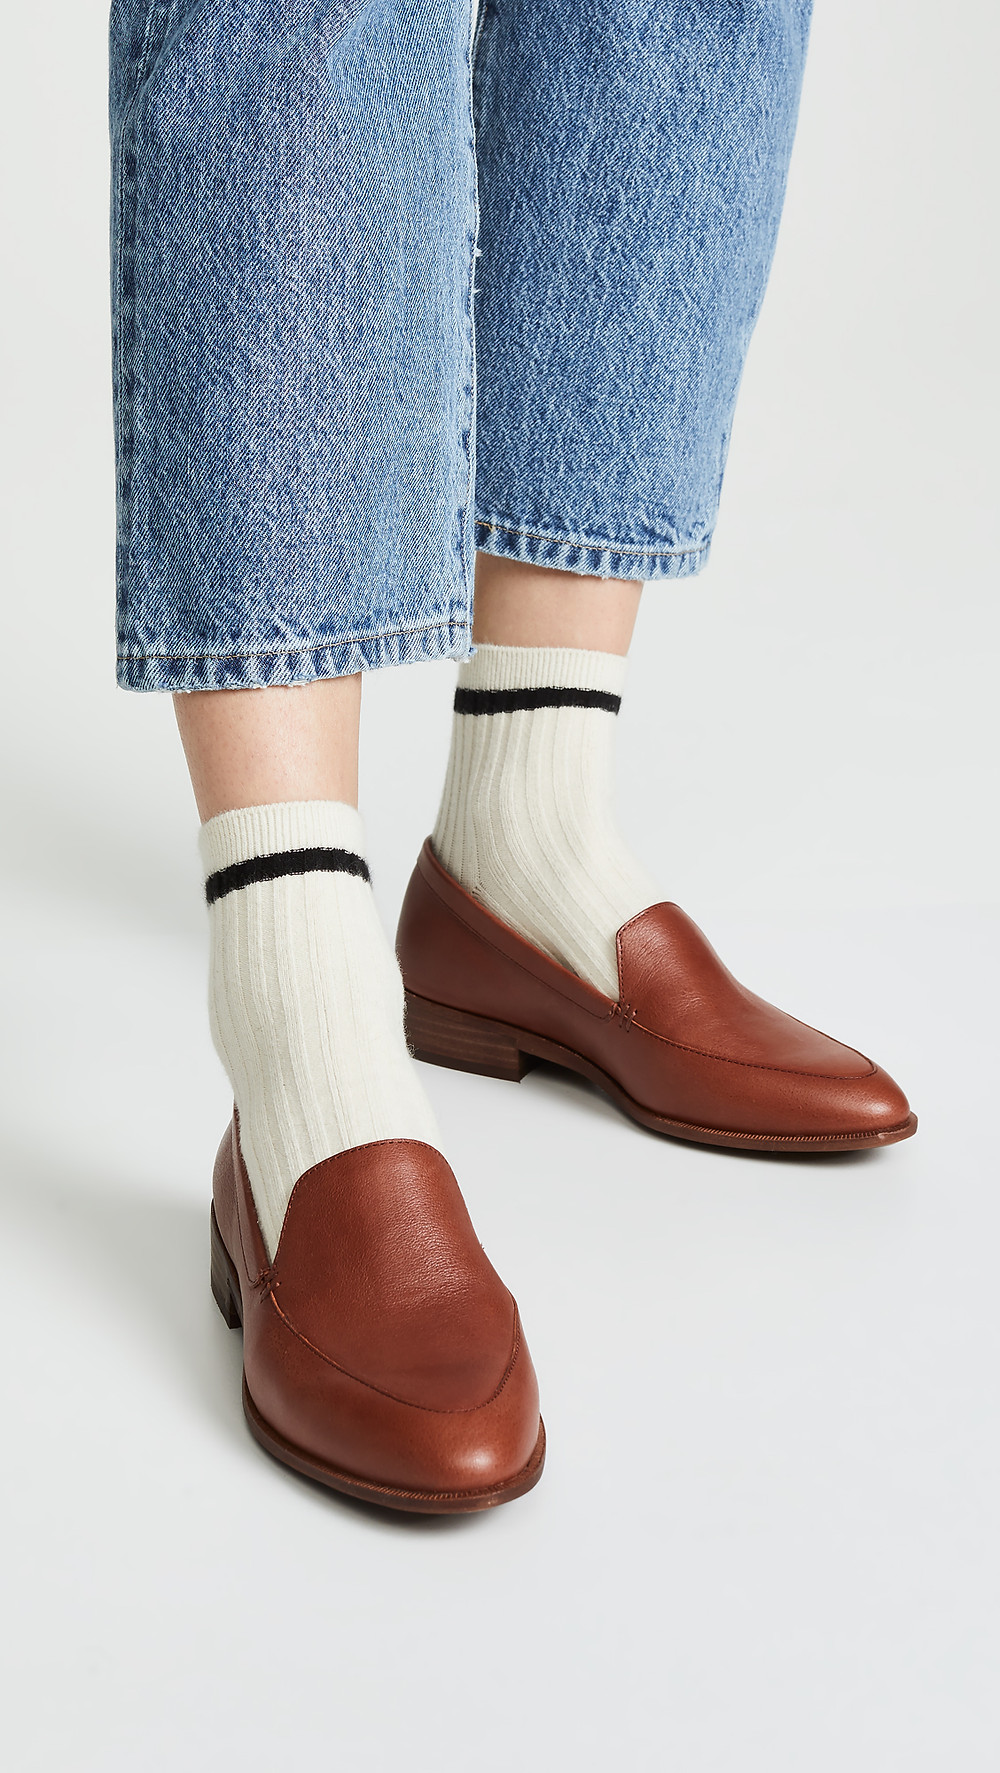 Madewell Frances Loafers $148